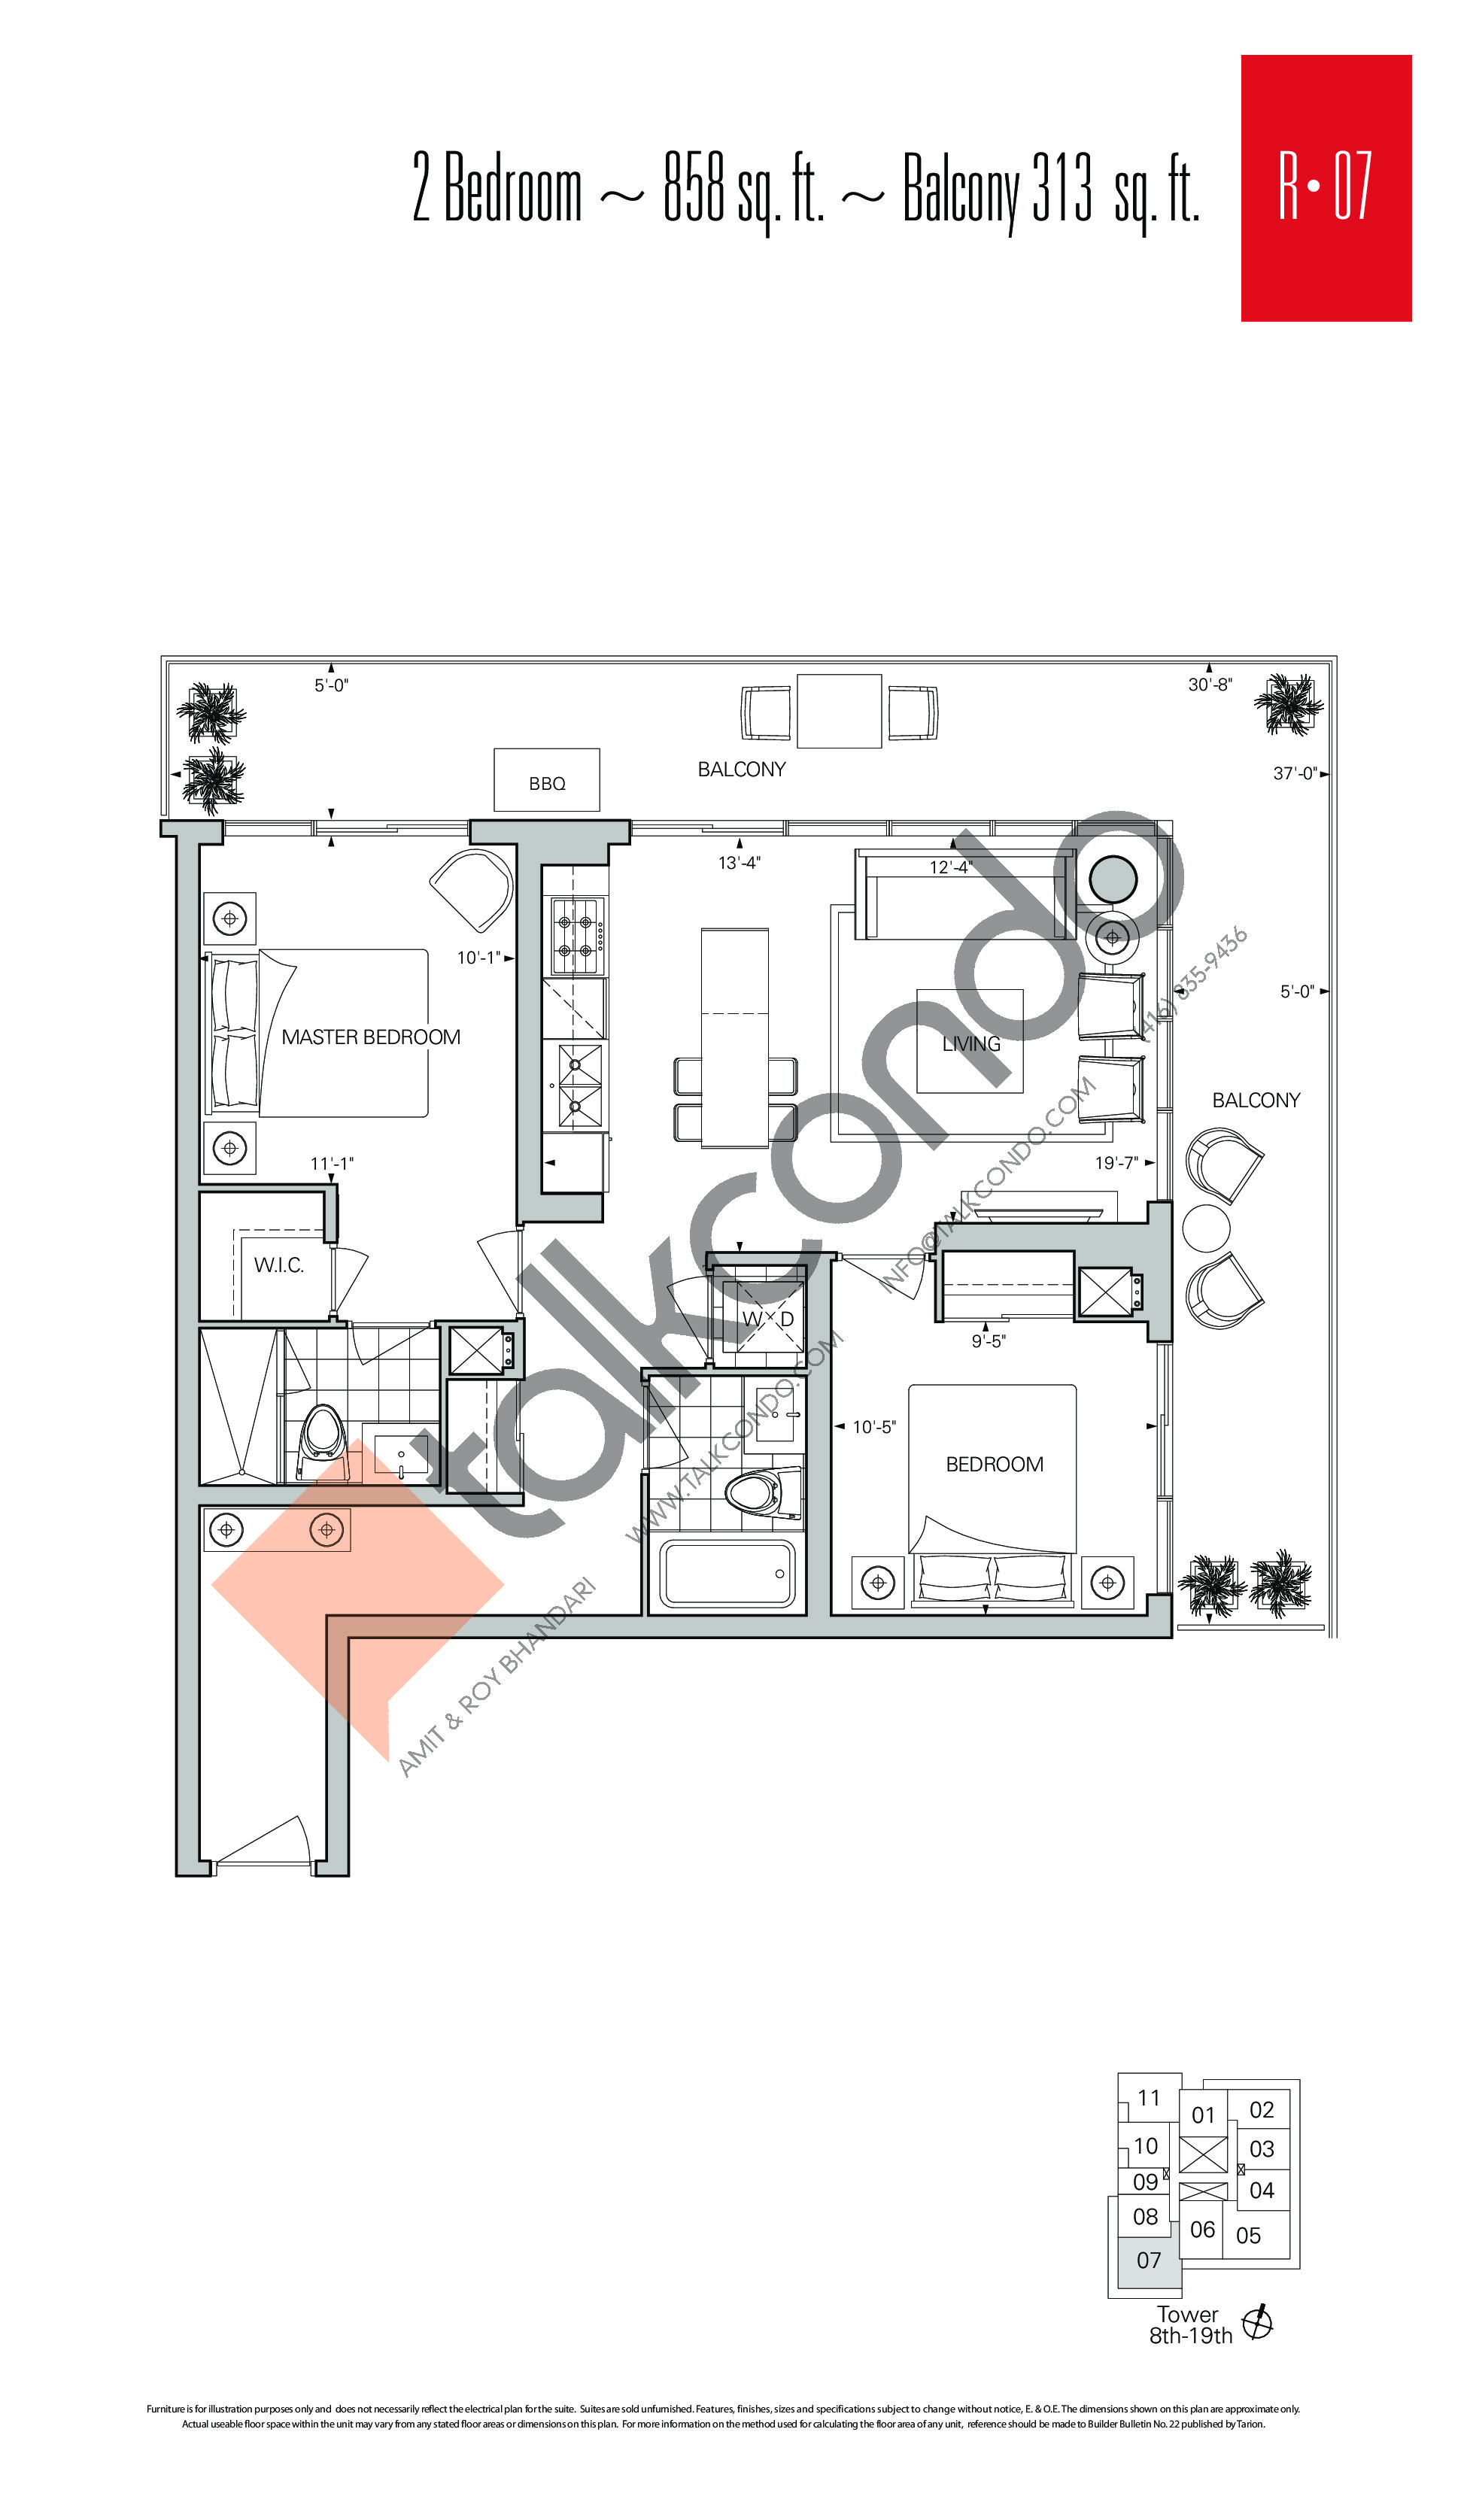 R-07 Floor Plan at Rise Condos - 858 sq.ft